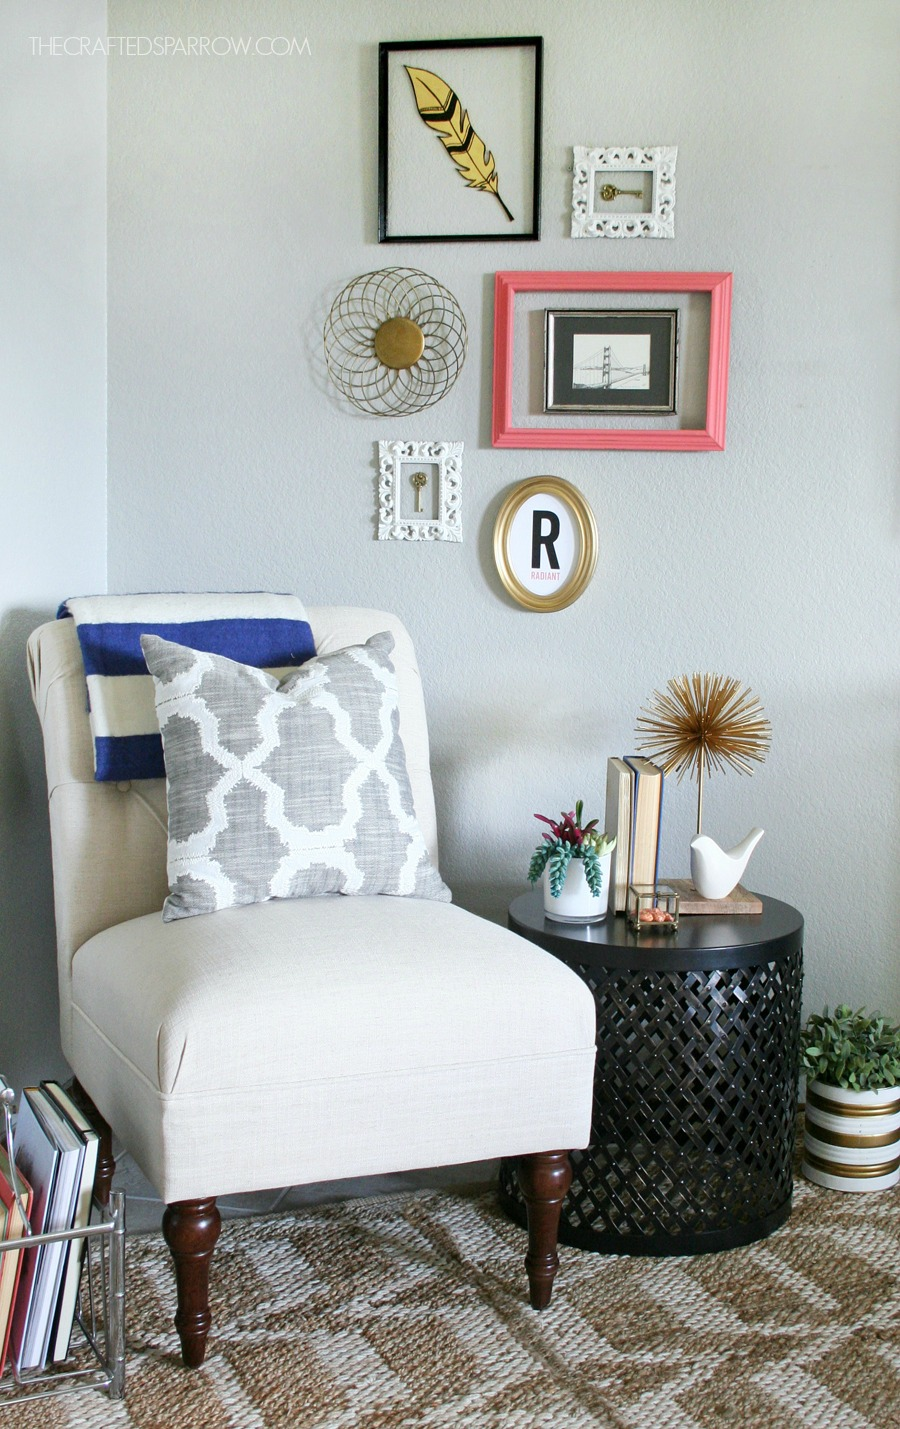 How To Decorate A Loft Living Room Upstairs: How To Pick & Decorate The Right End Table